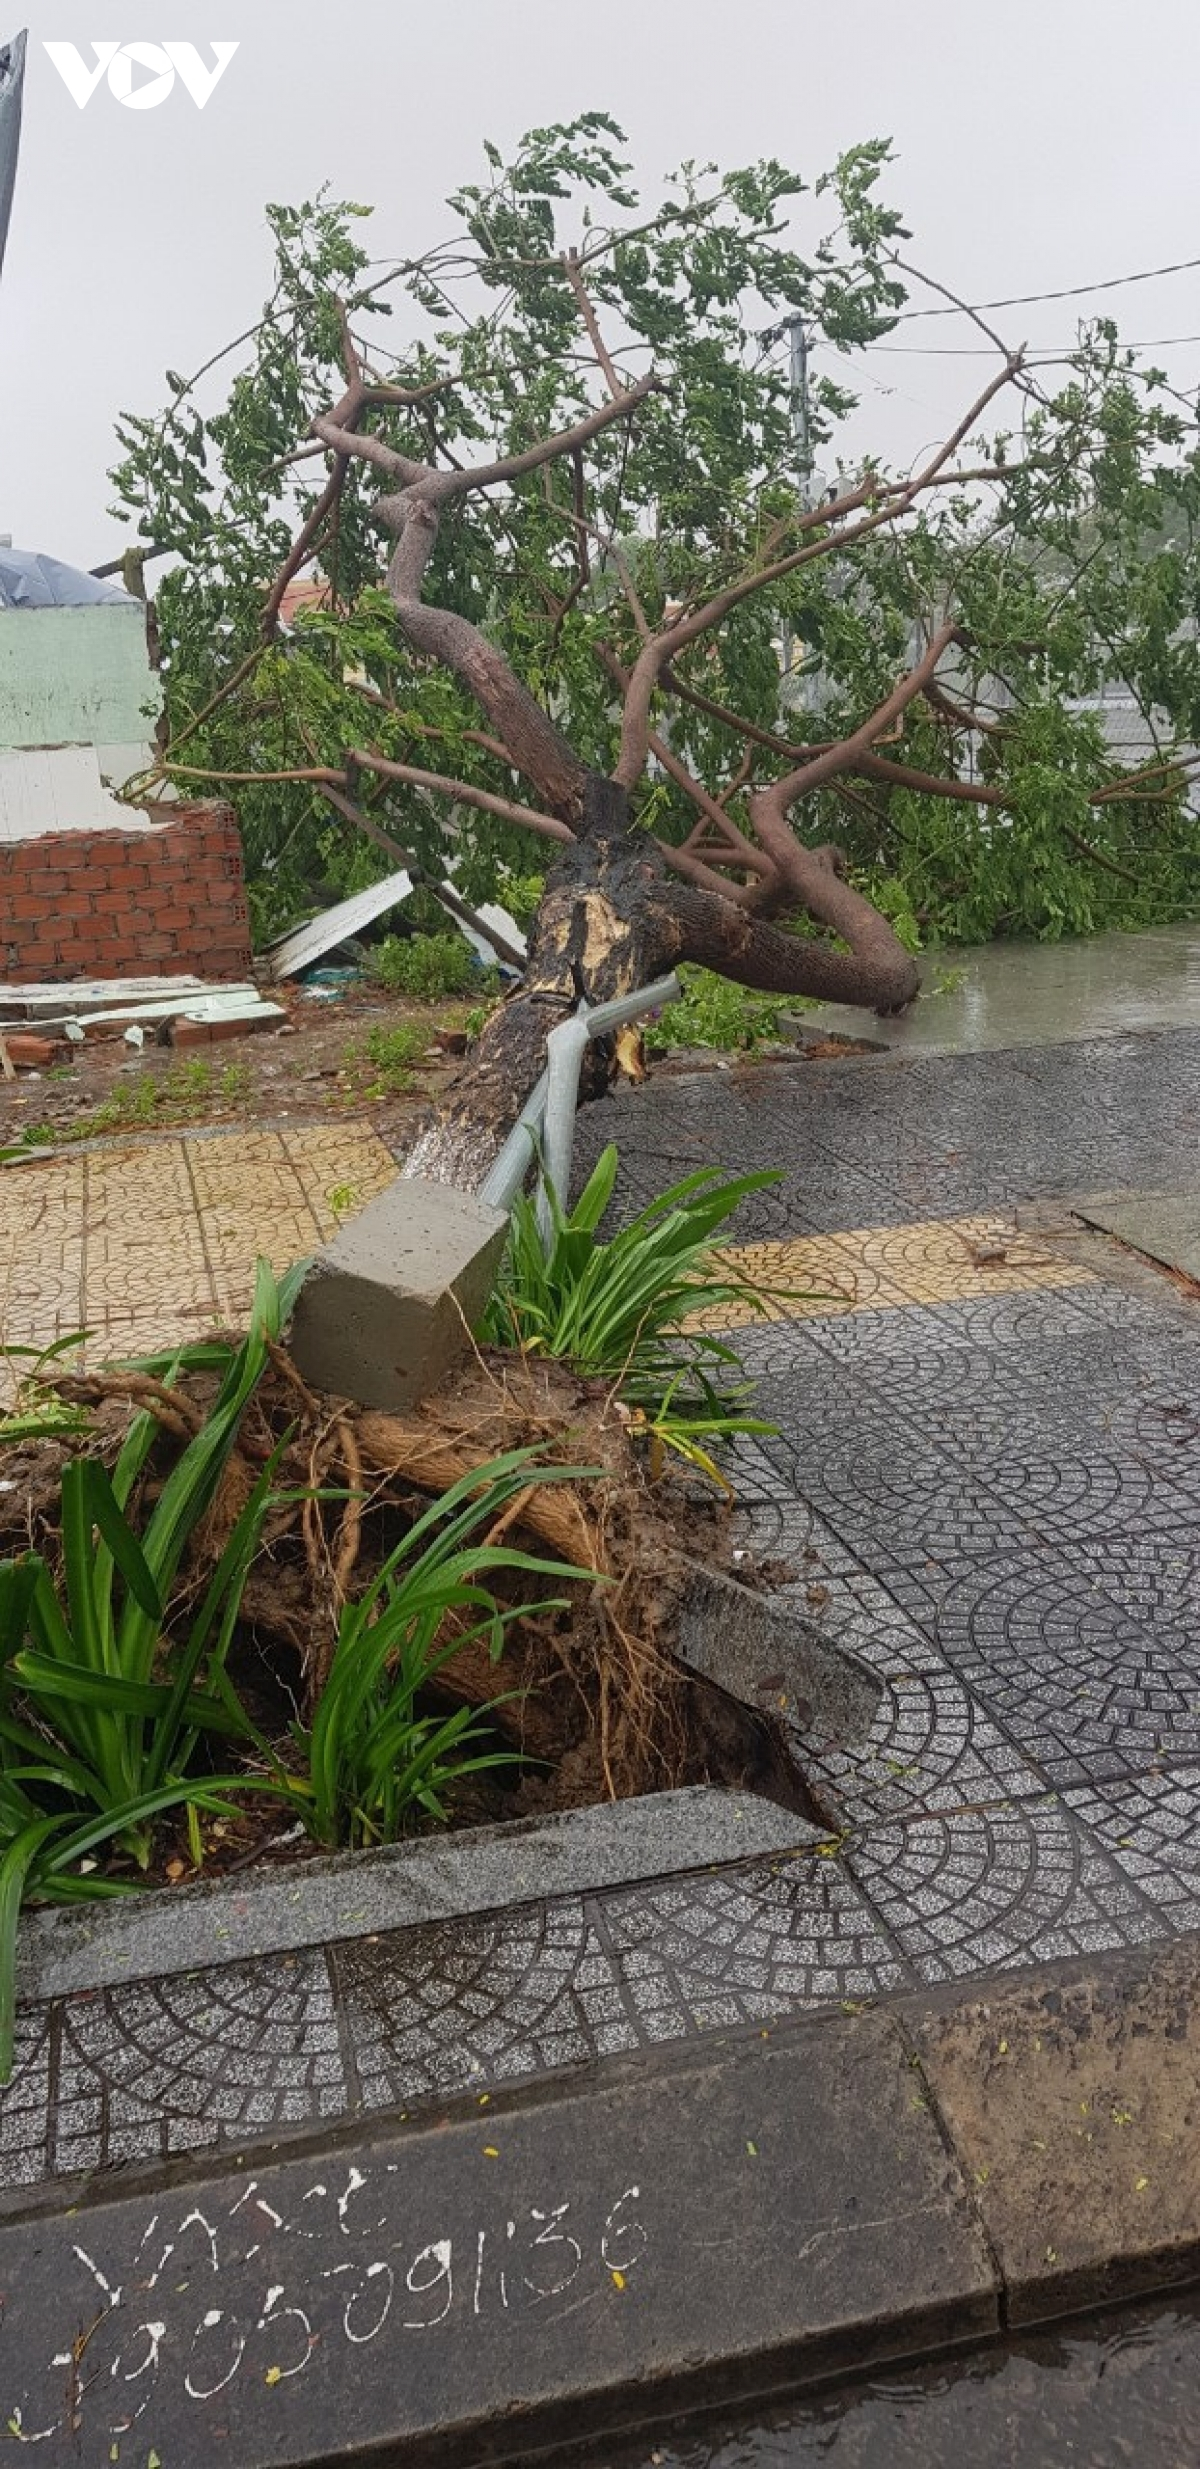 A giant tree blocks the pavement after being uprooted in Son Tra district, Da Nang.